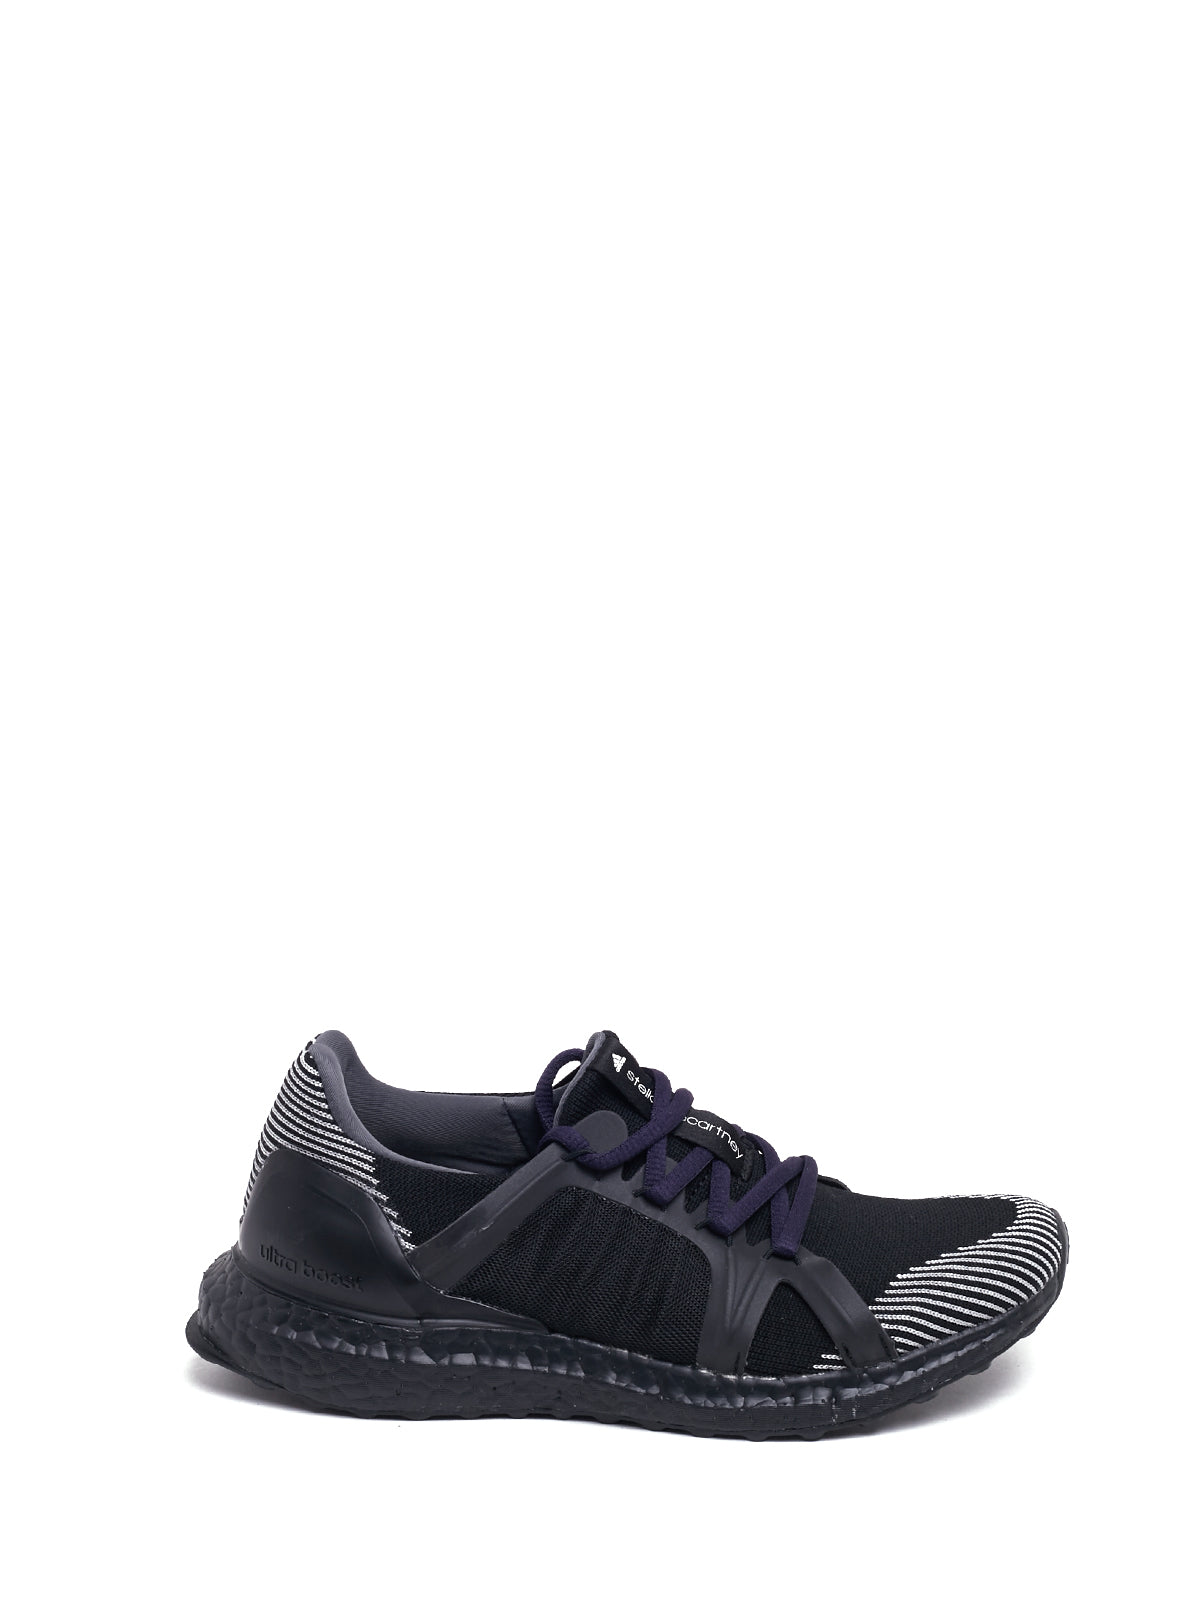 666bd26699d Adidas By Stella Mccartney Ultra Boost Sneakers In Black. CETTIRE